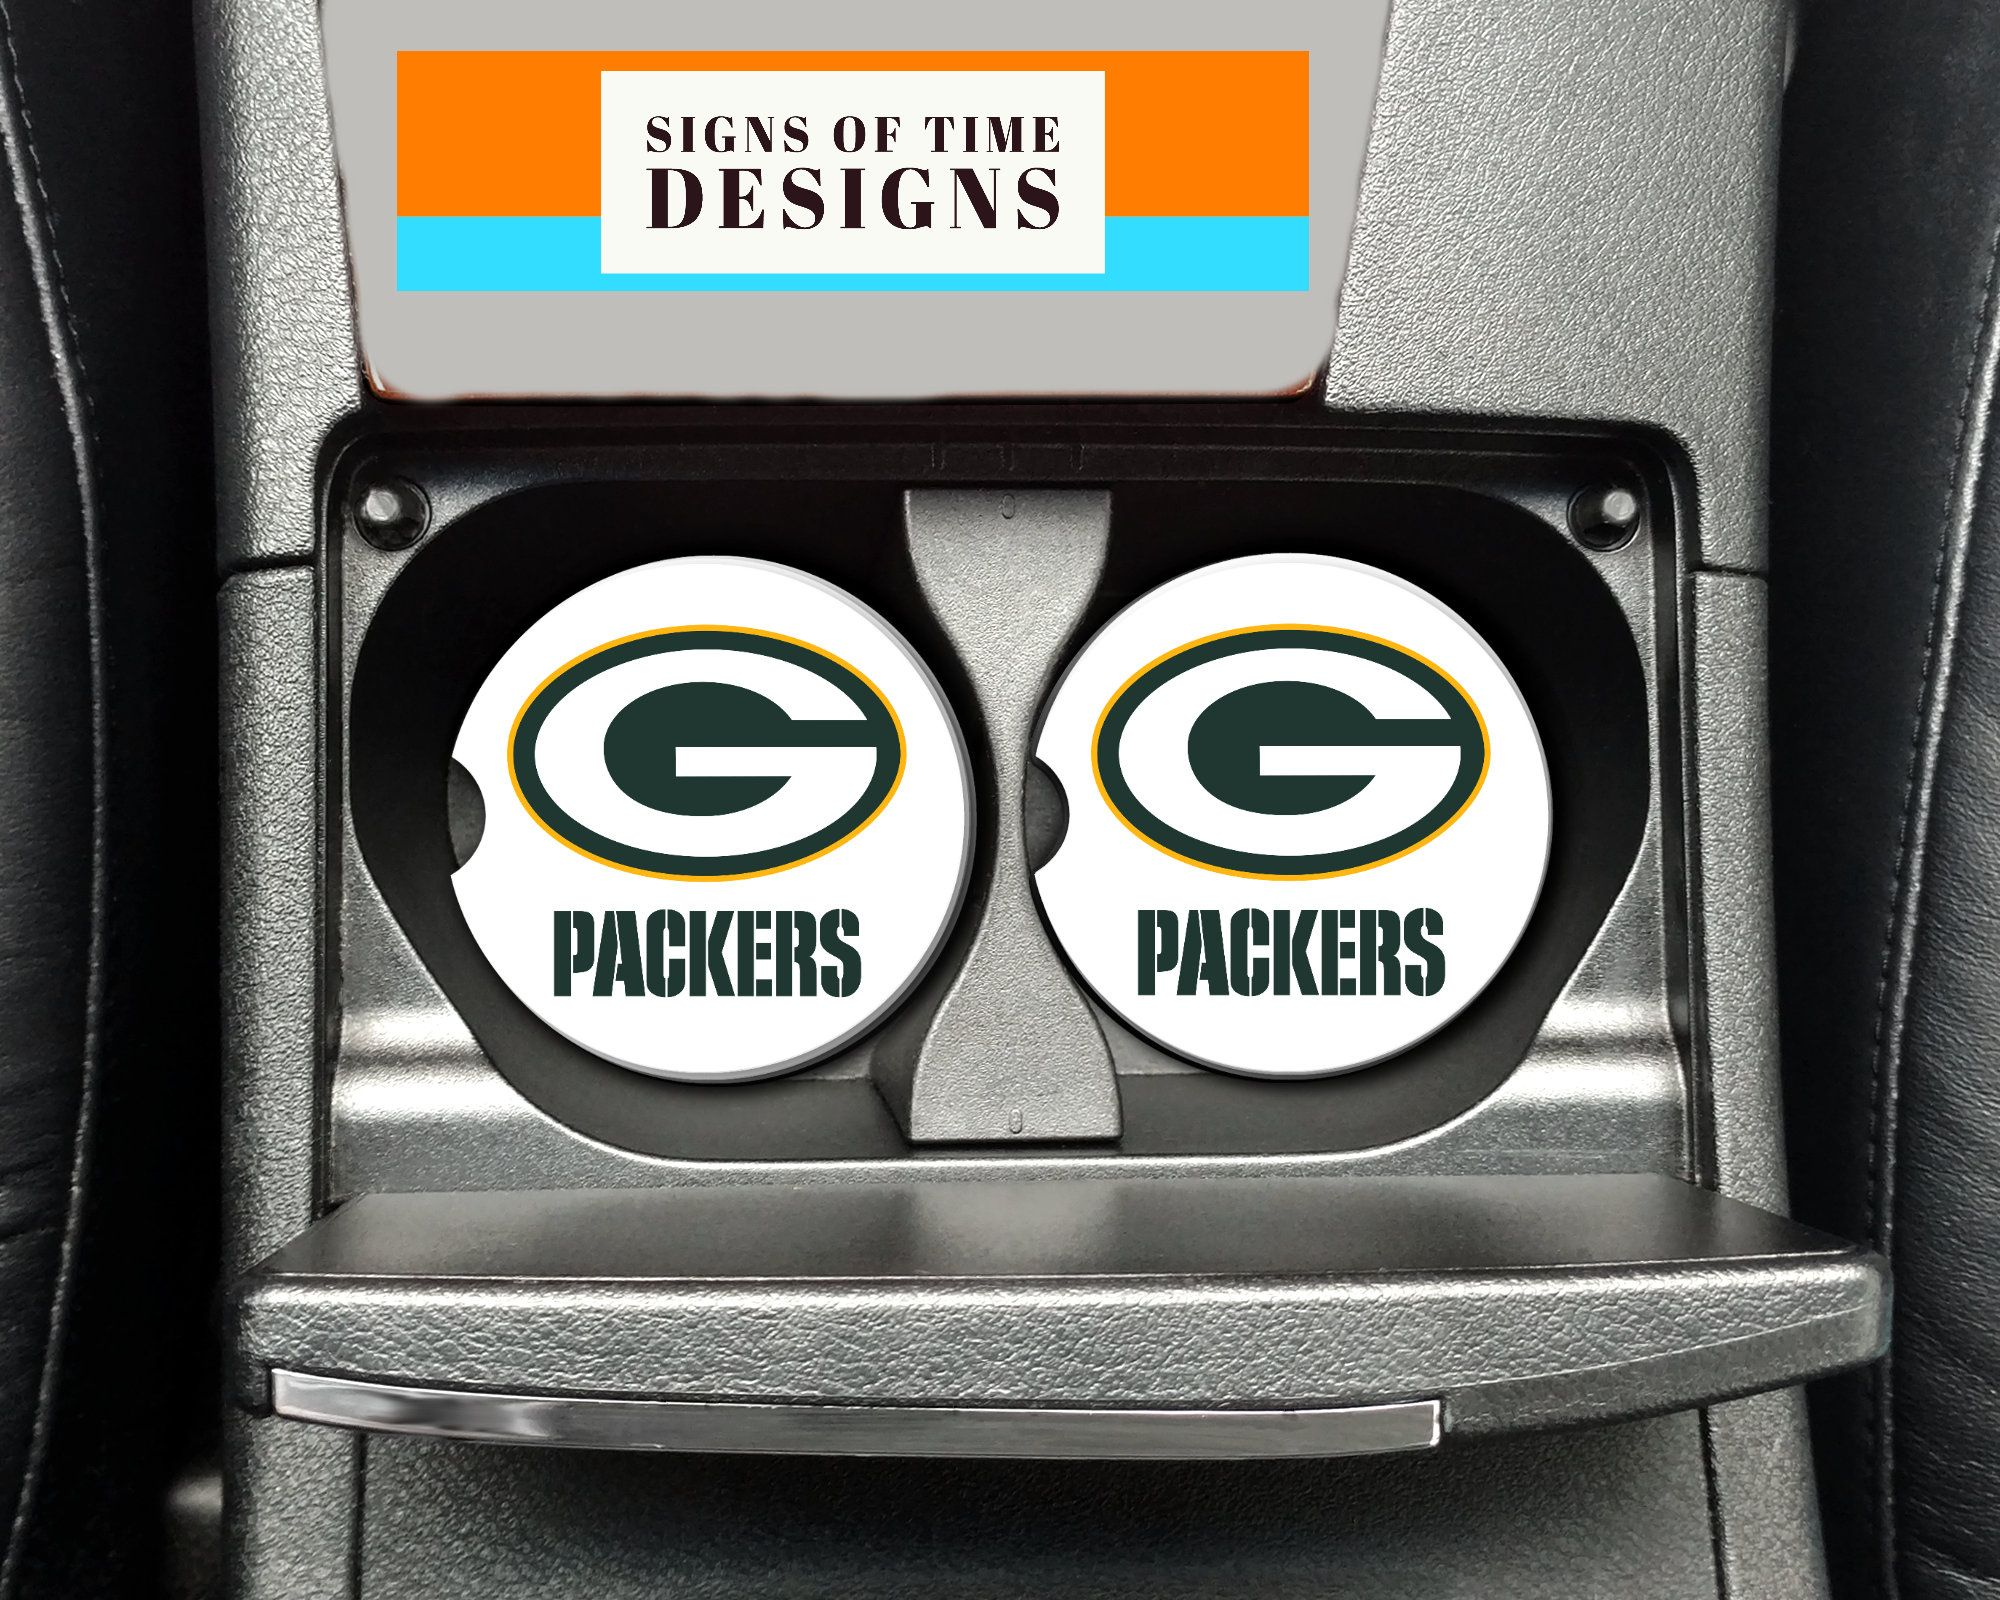 absorbs Green Bay Packers Pattern Sandstone car coaster 2 piece set